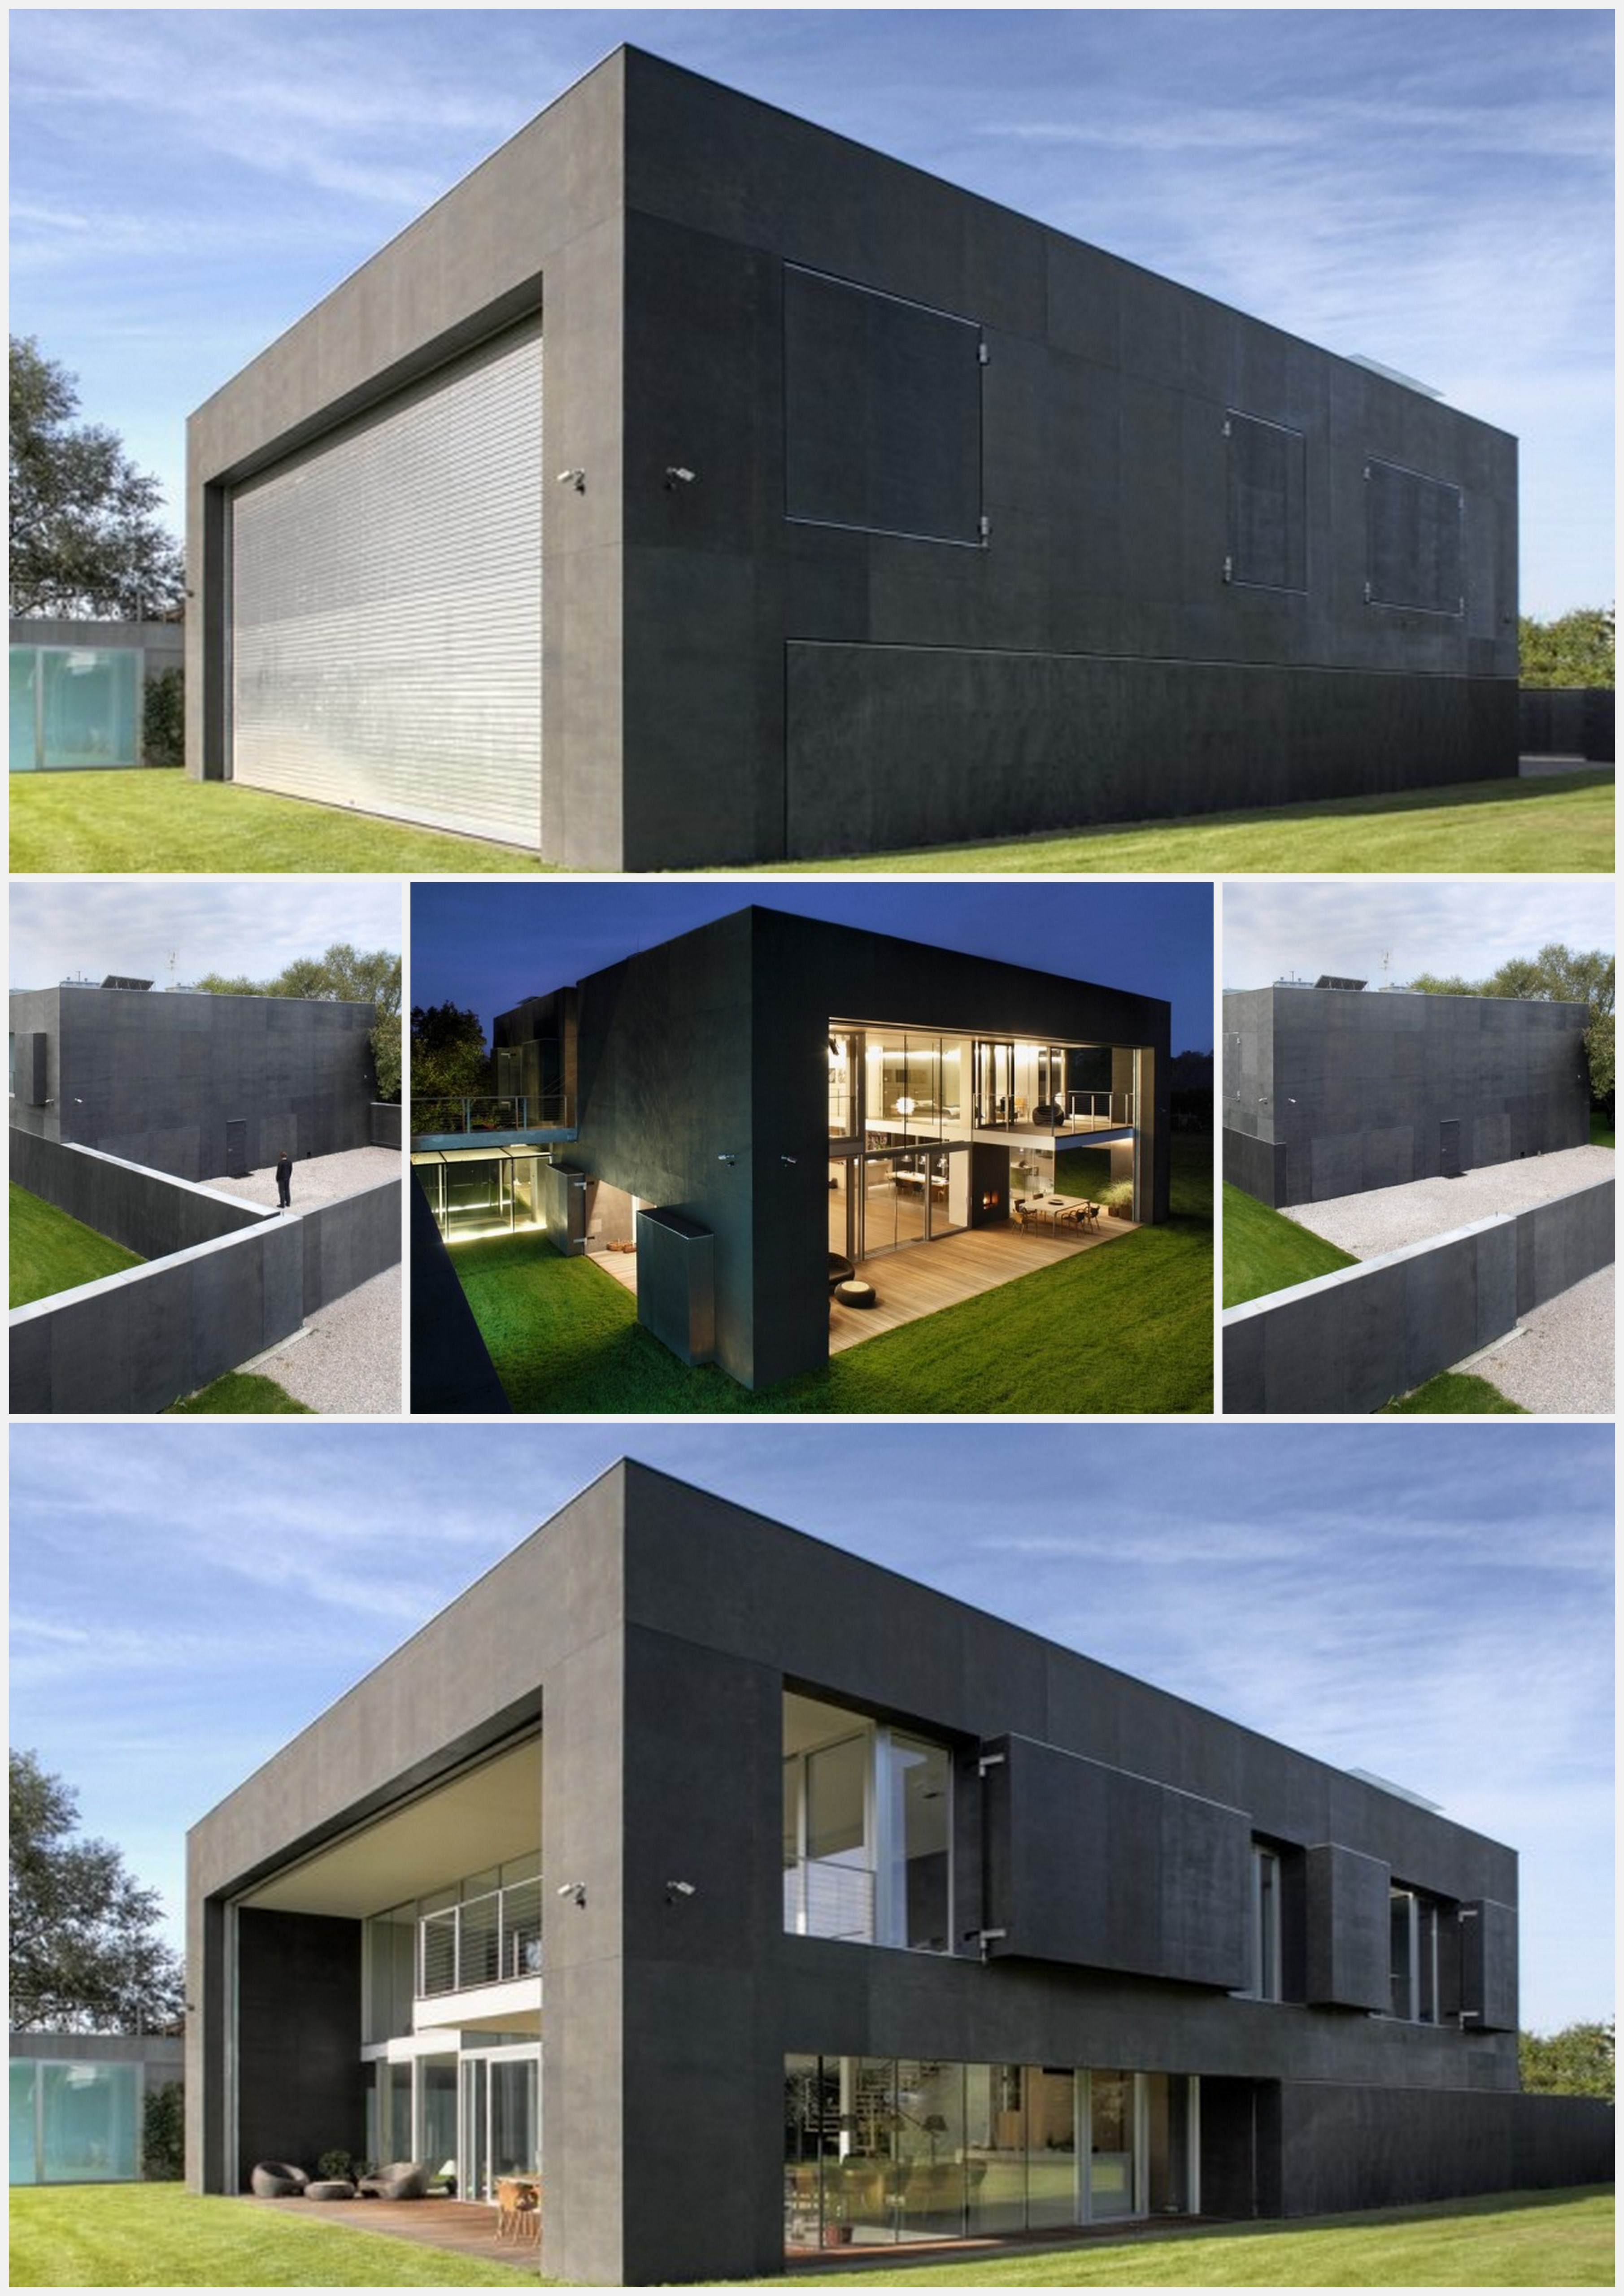 My plan for the Auckland Zombie Apocalypse – One Blue Pirate Zombie Apocalypse Home Design on panic room design, zombie apocalypse graphic design, zombie apocalypse interior design,